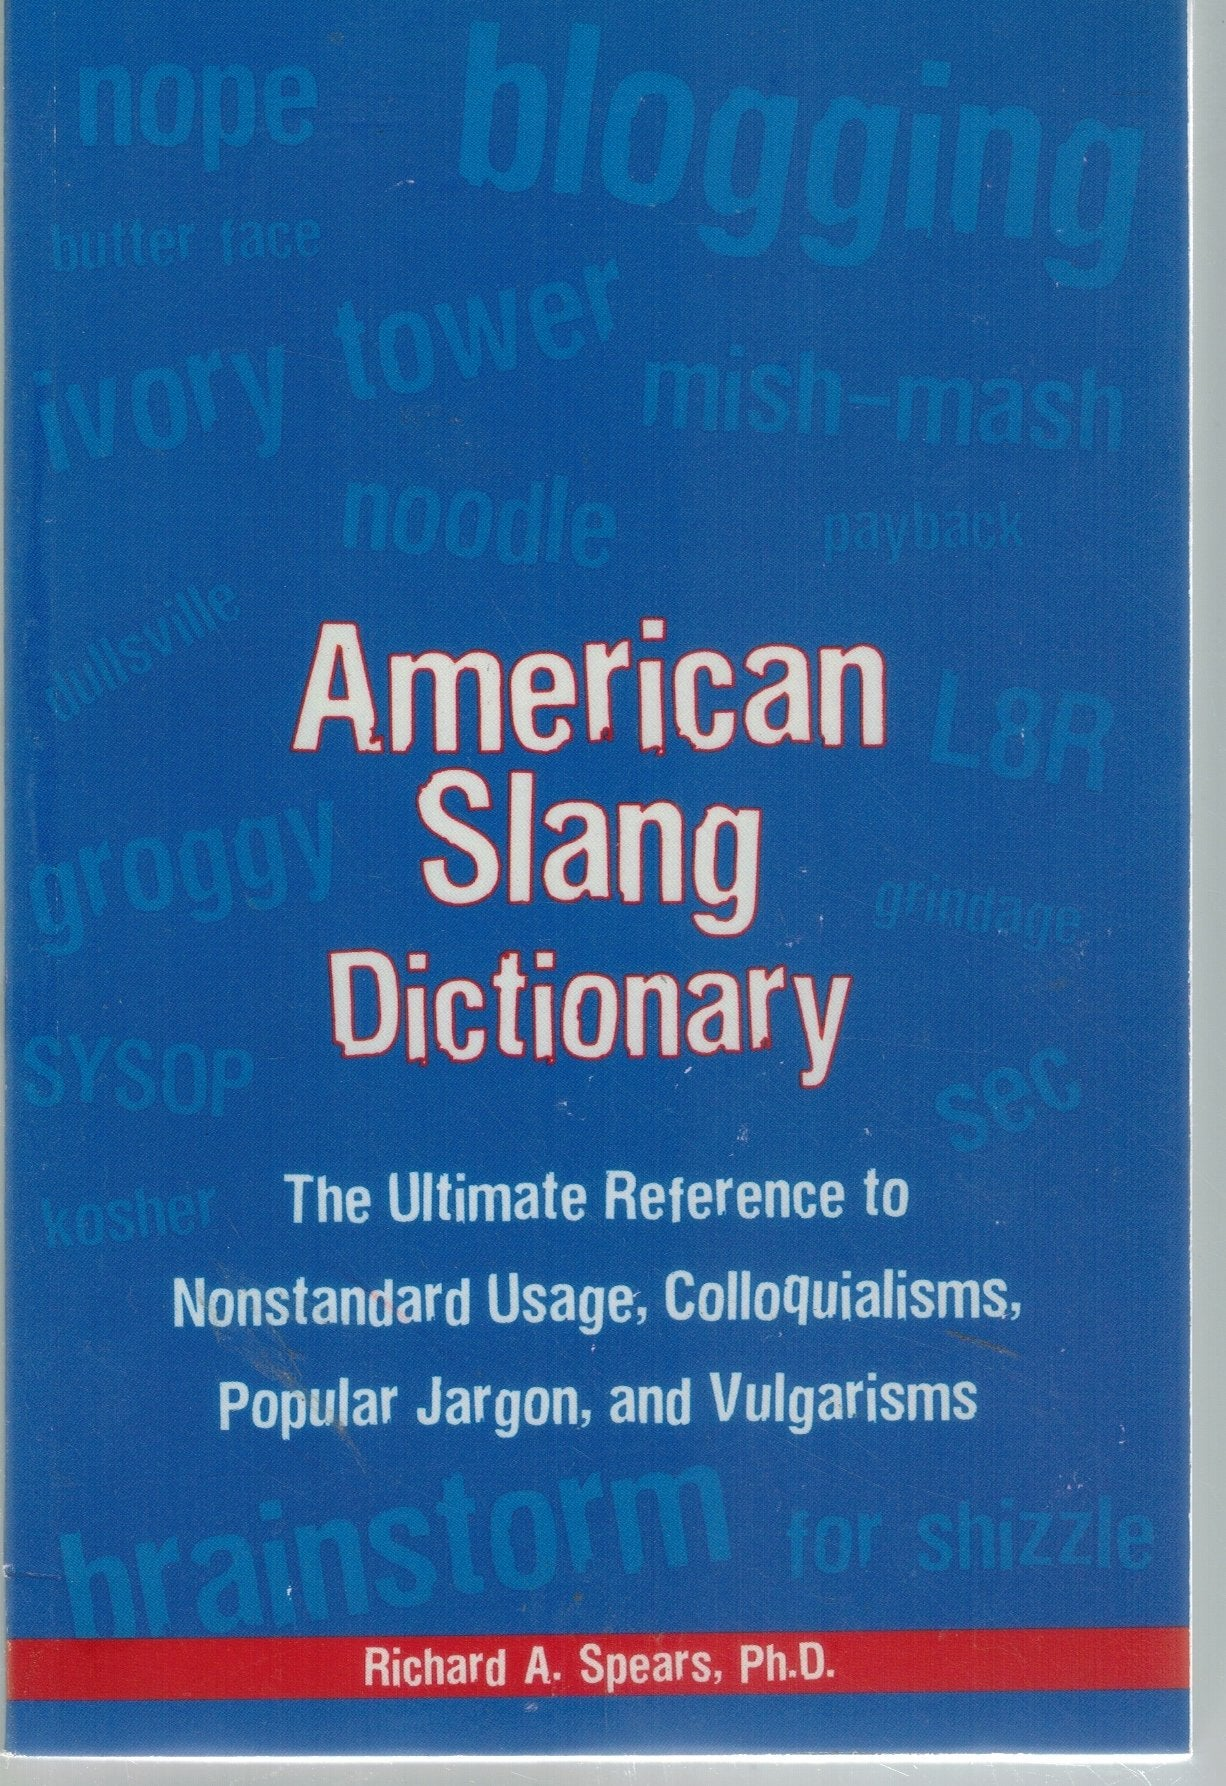 American Slang Dictionary, Fourth Edition  by Spears, Richard A.